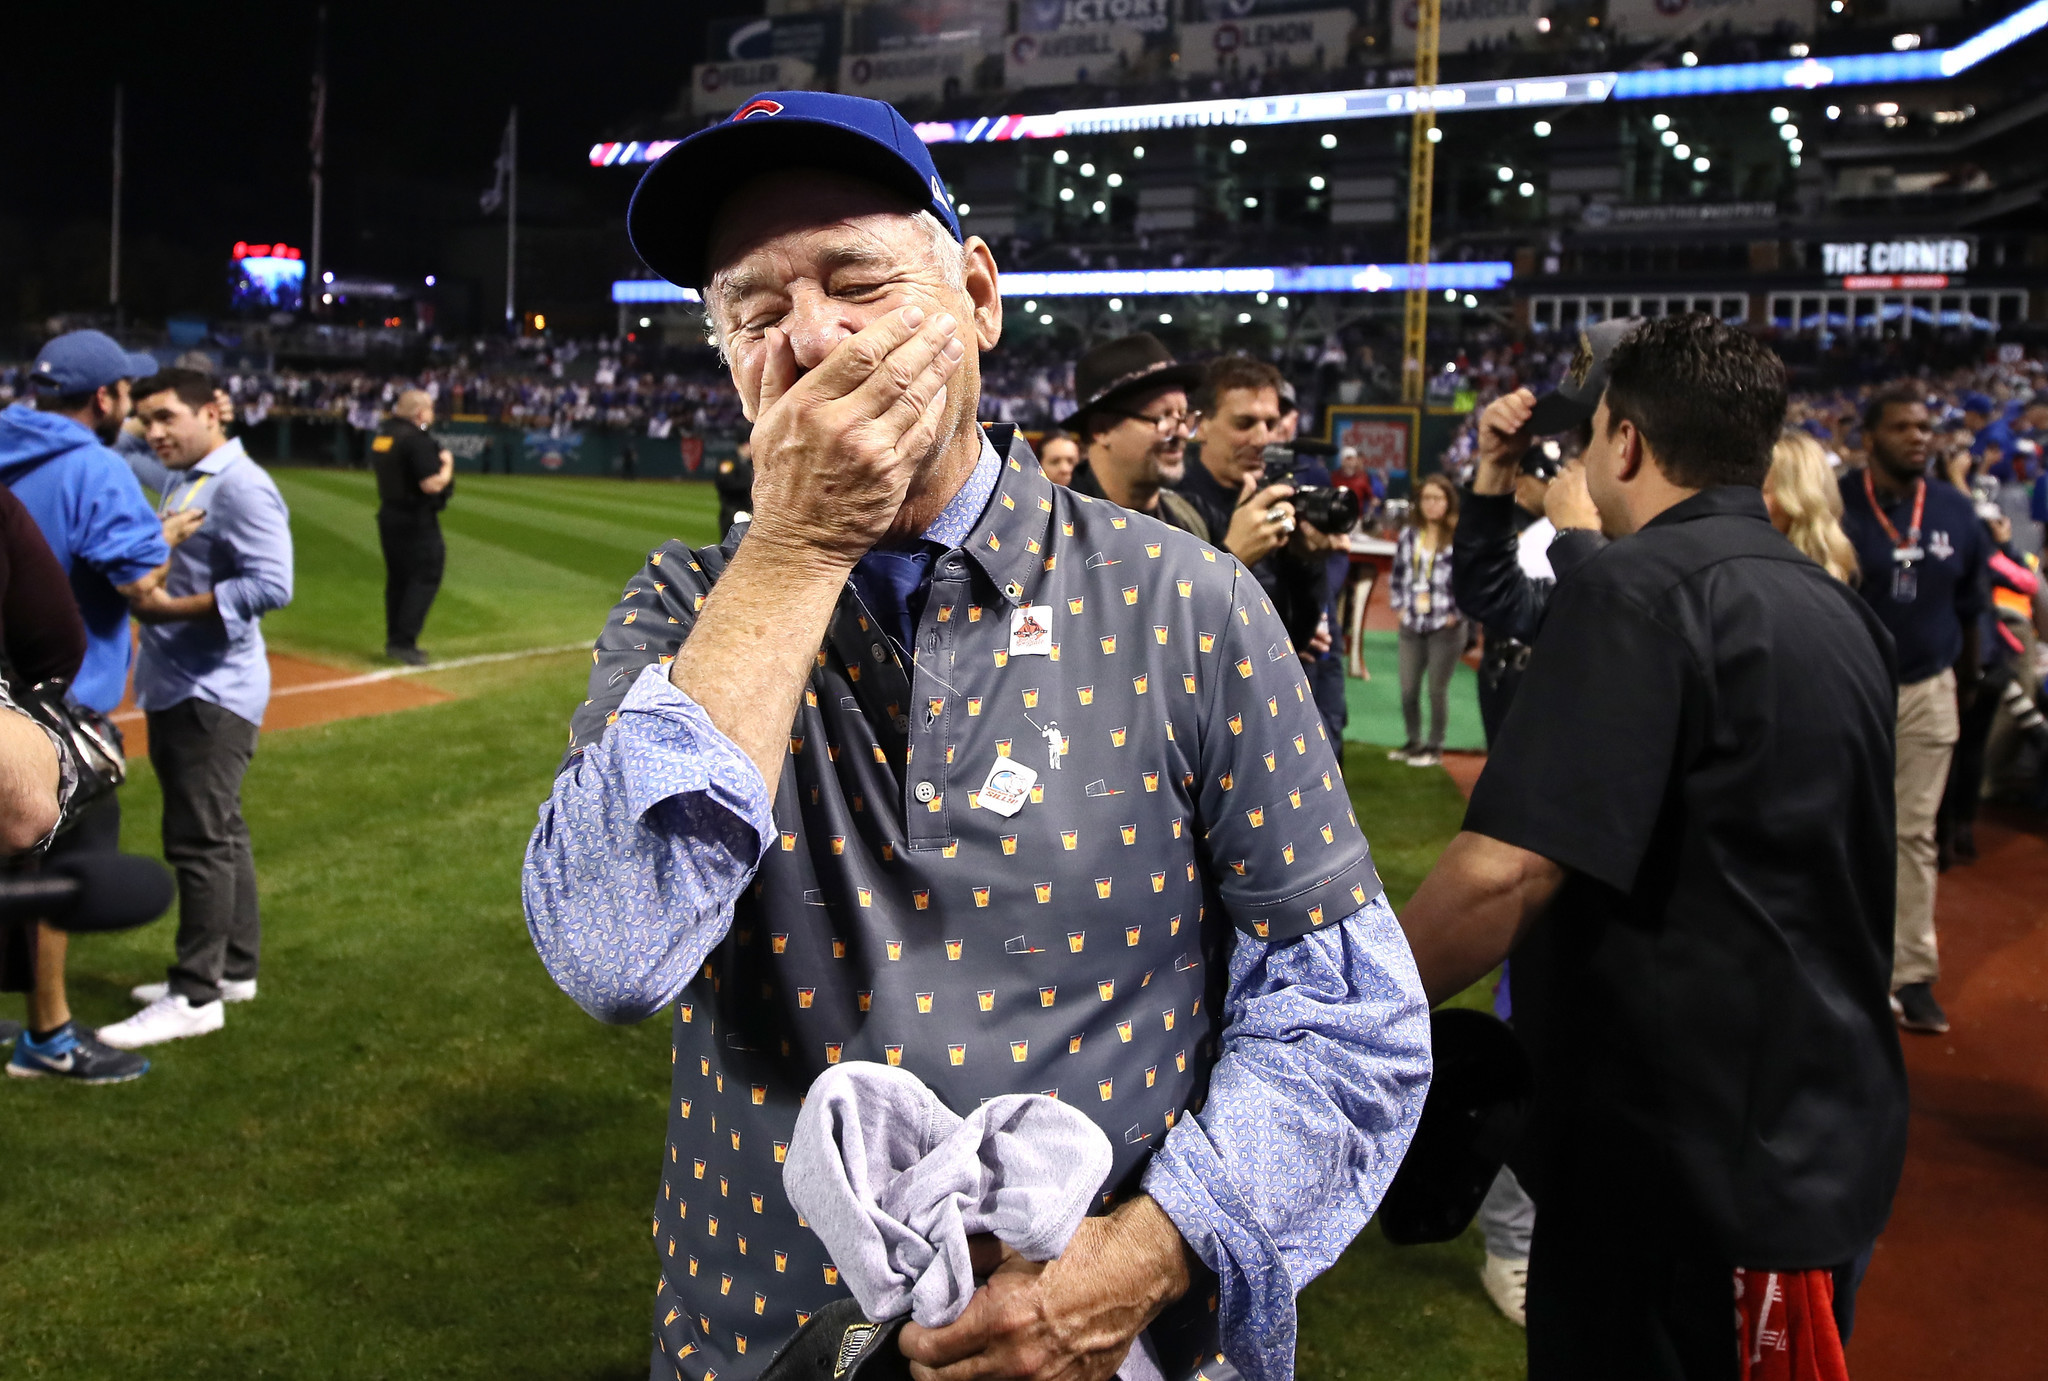 Bill murray i ve been imagining this for a long time chicago tribune